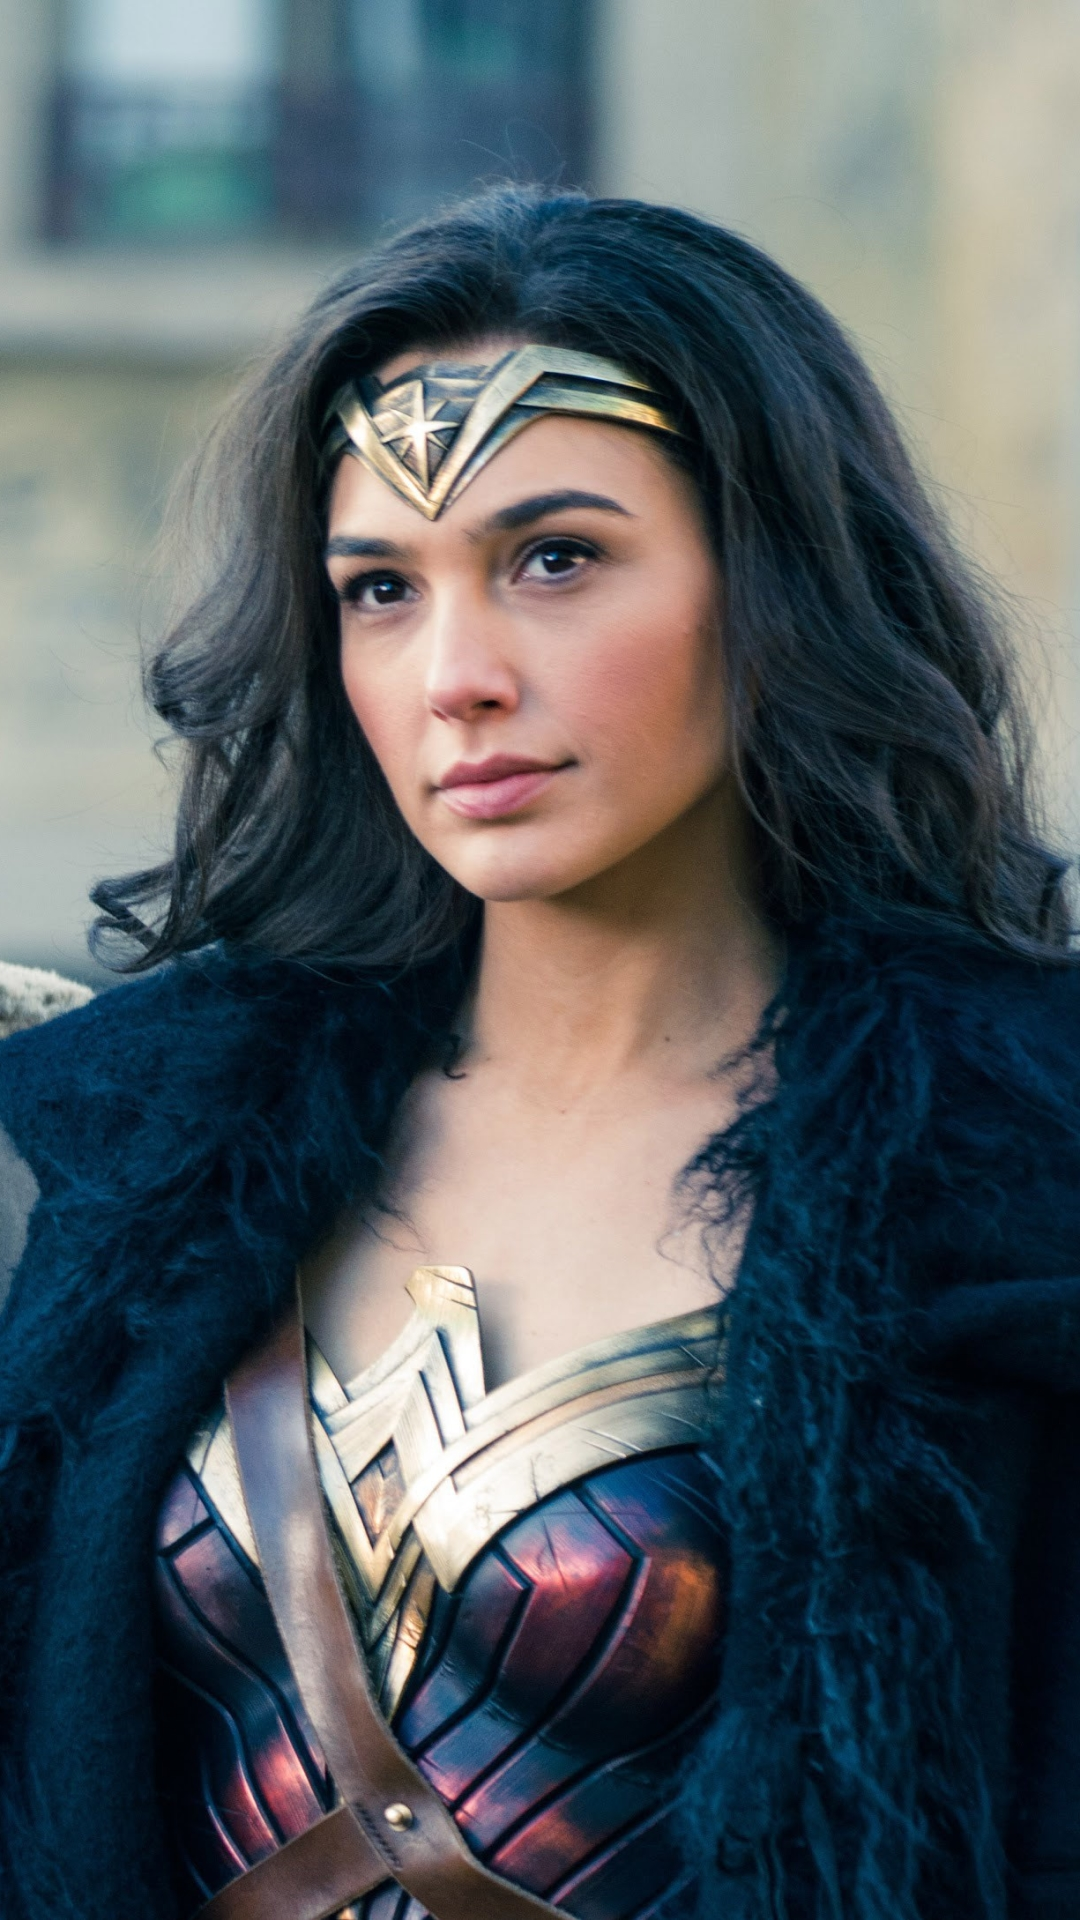 iPhone 8 Plus MovieWonder Woman Wallpaper ID 677615